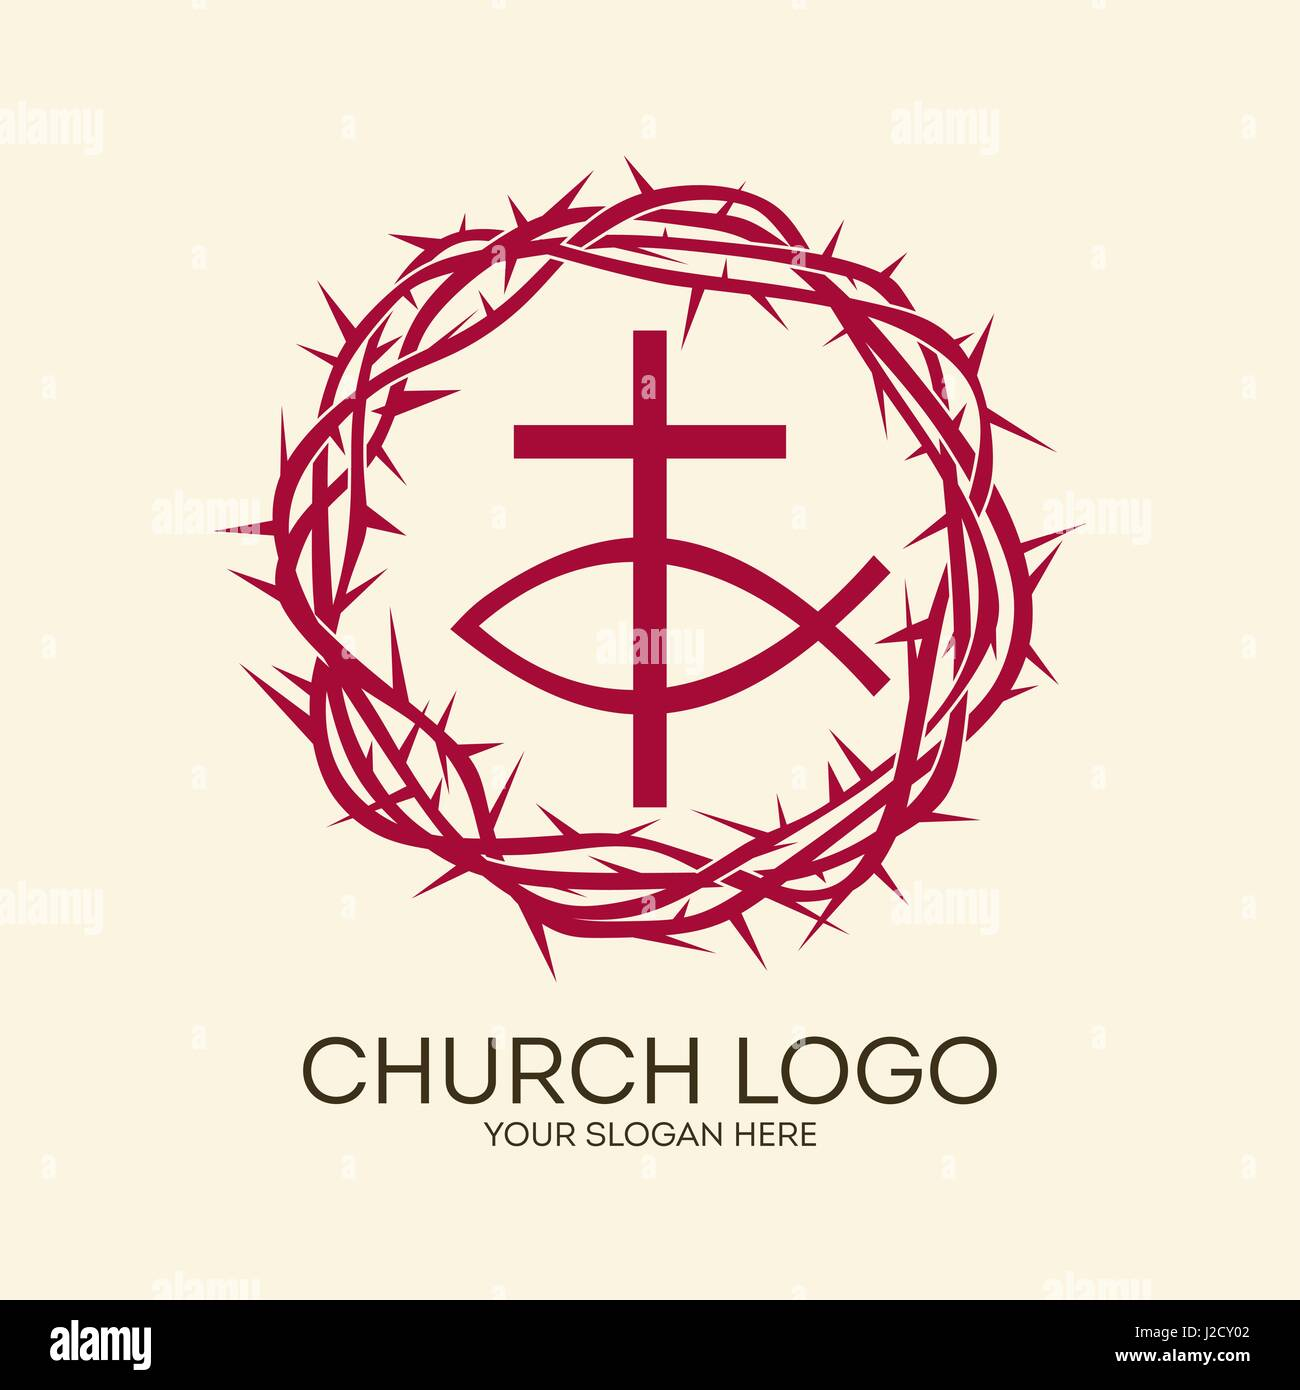 Church Logo Christian Symbols Crown Of Thorns Cross And Fish